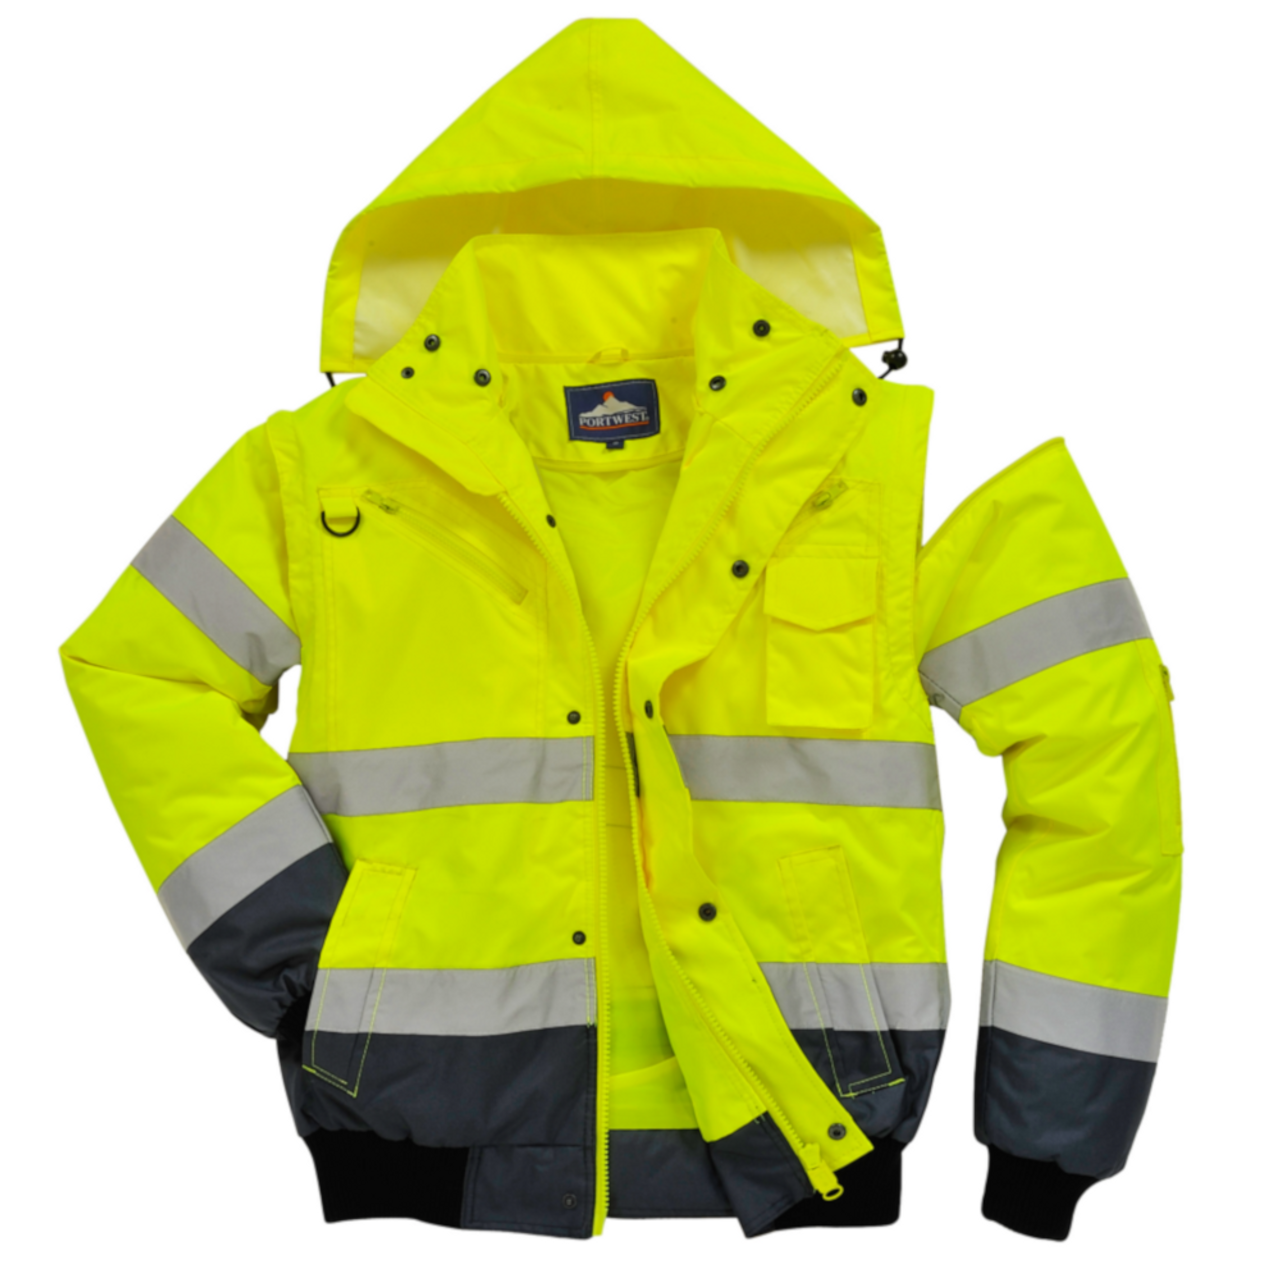 Portwest UC466 High Visibility Waterproof Bomber Jacket with Reflective Tape